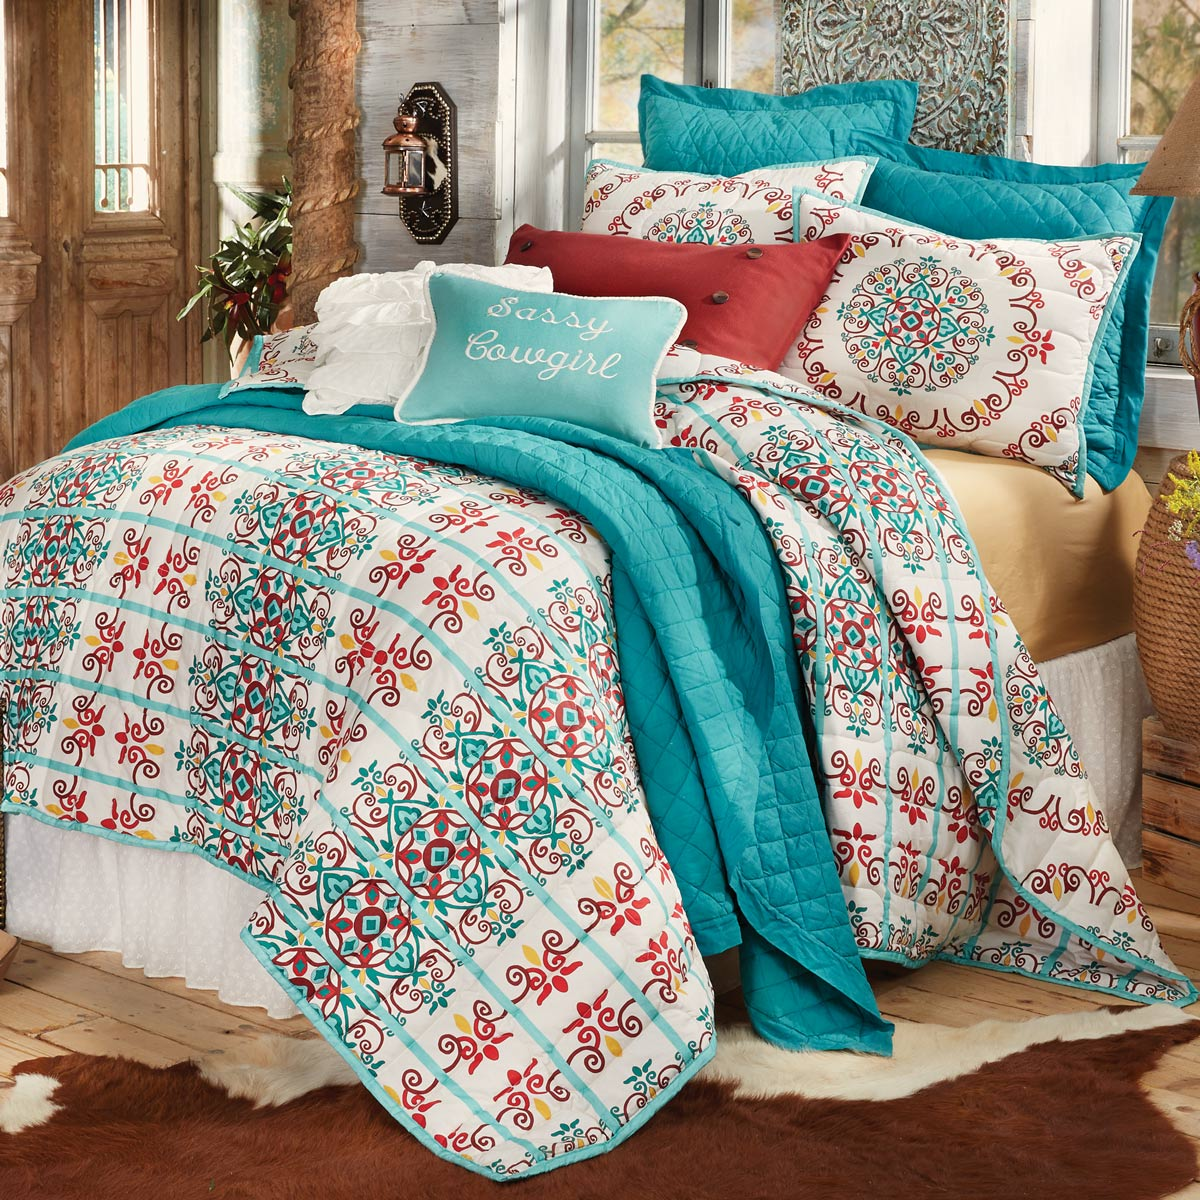 Black Forest Decor Talavera quilt bed set - full/queen